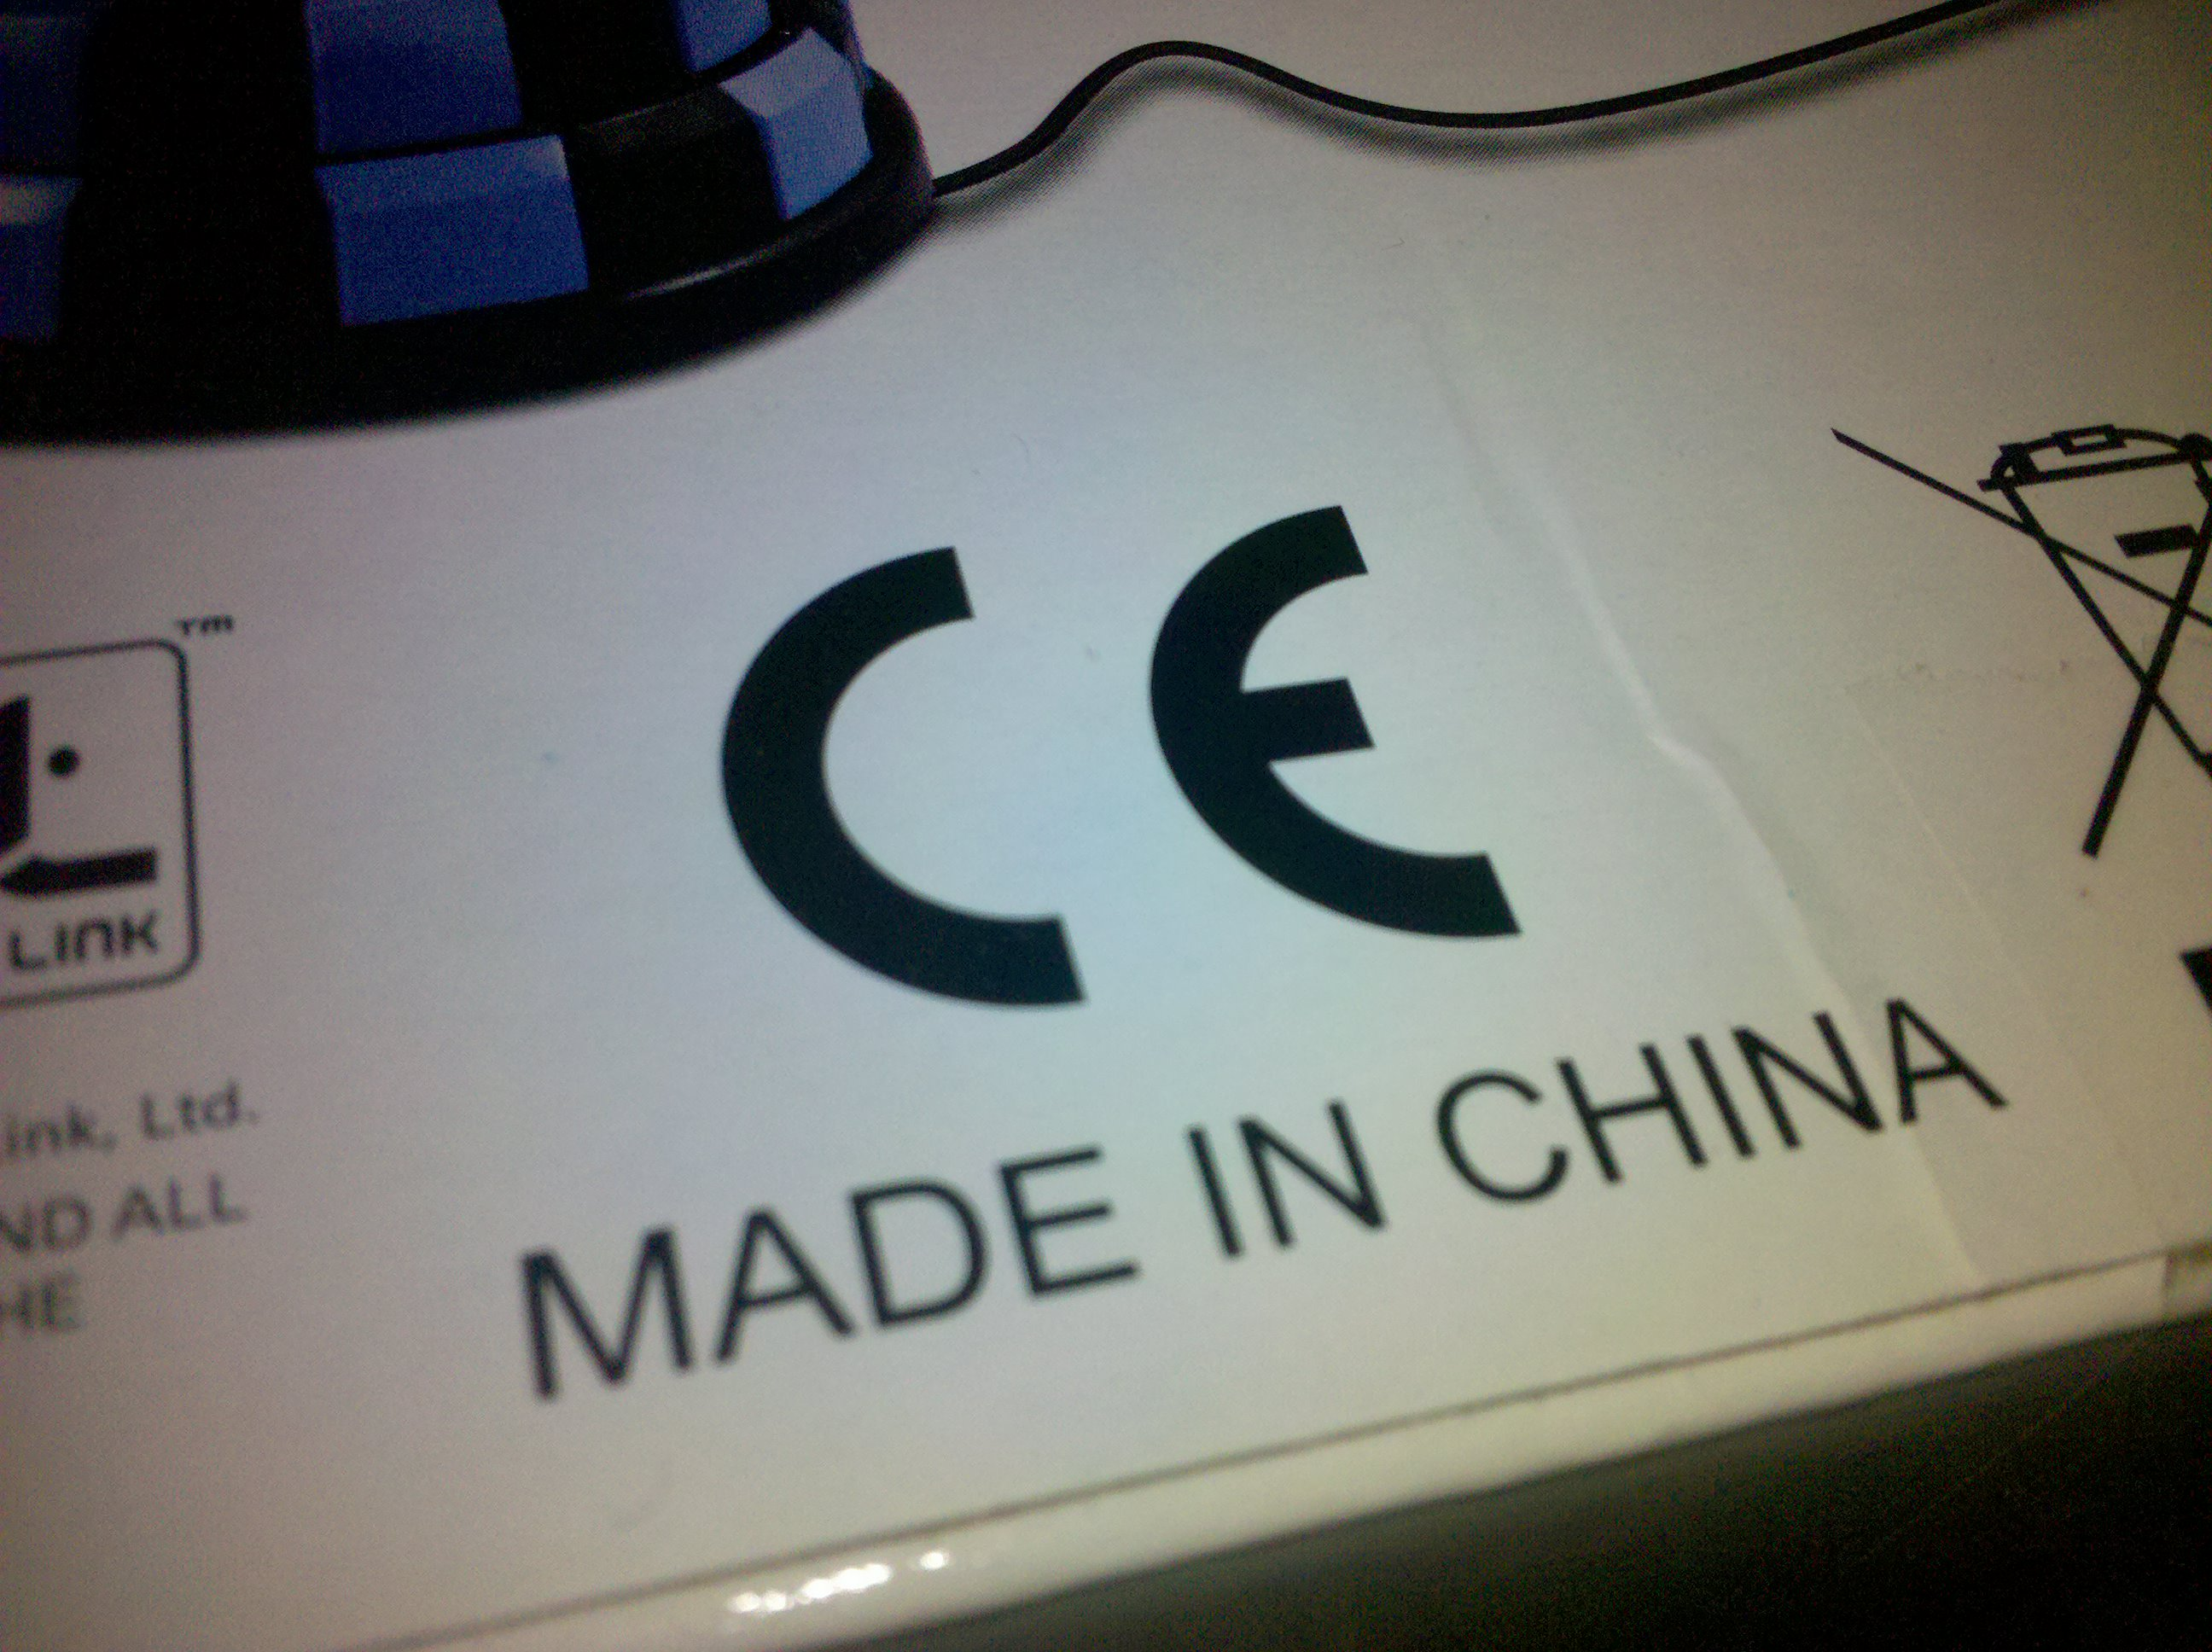 http://upload.wikimedia.org/wikipedia/commons/a/ae/CE_Made_in_China.jpg